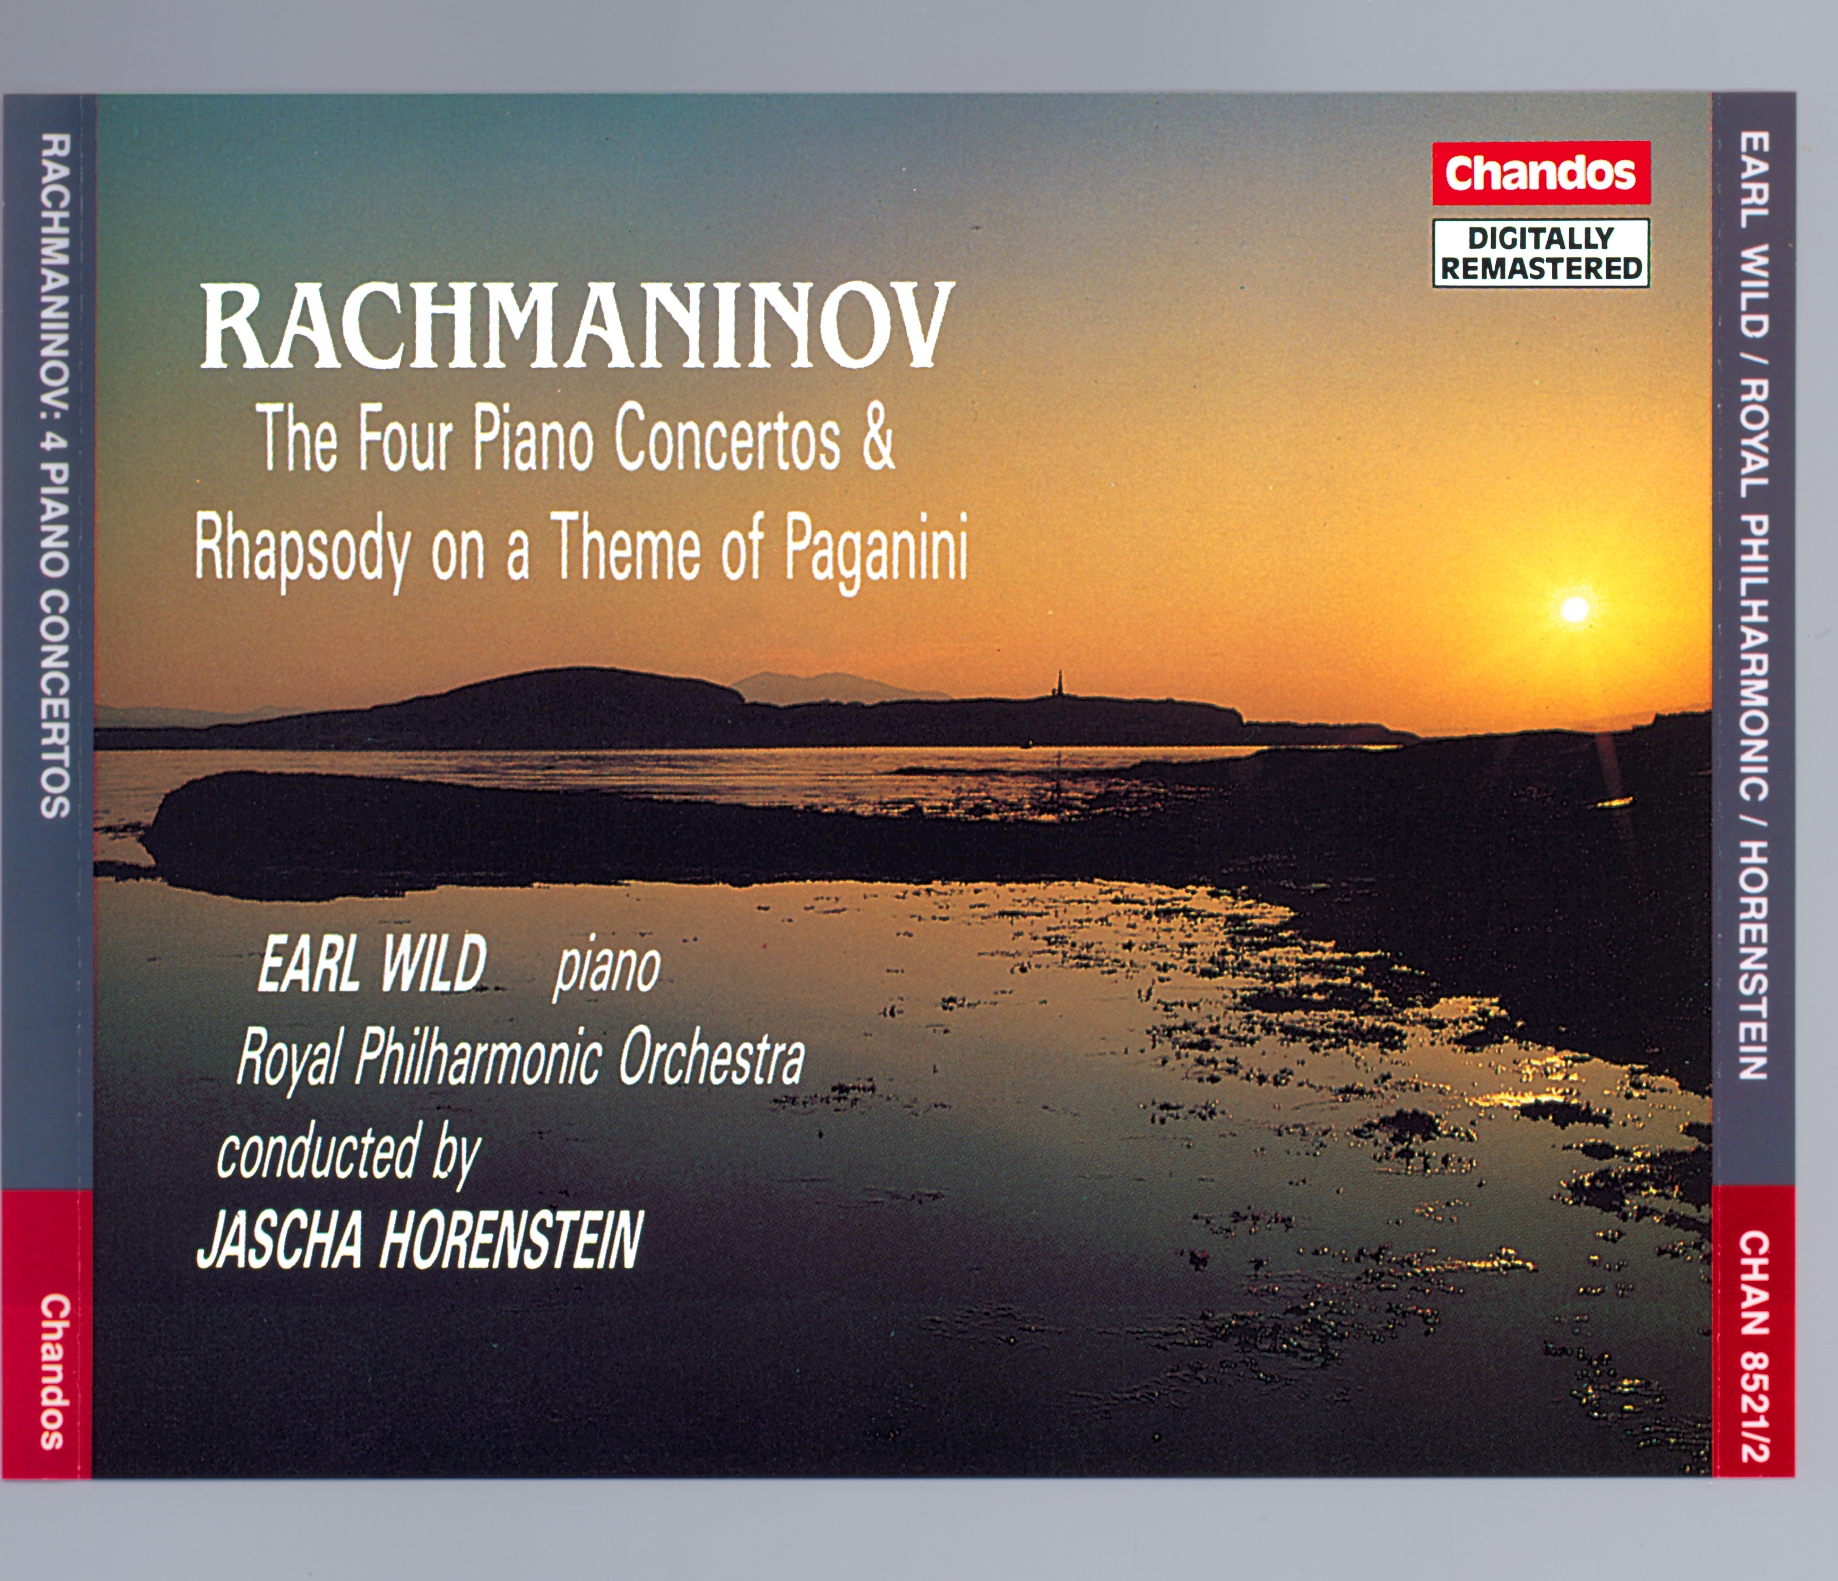 Rachmaninov - Earl Wild, Royal Philharmonic Orchestra, Jascha Horenstein The Four Piano Concertos & Rhapsody On A Theme Of Paganini CD